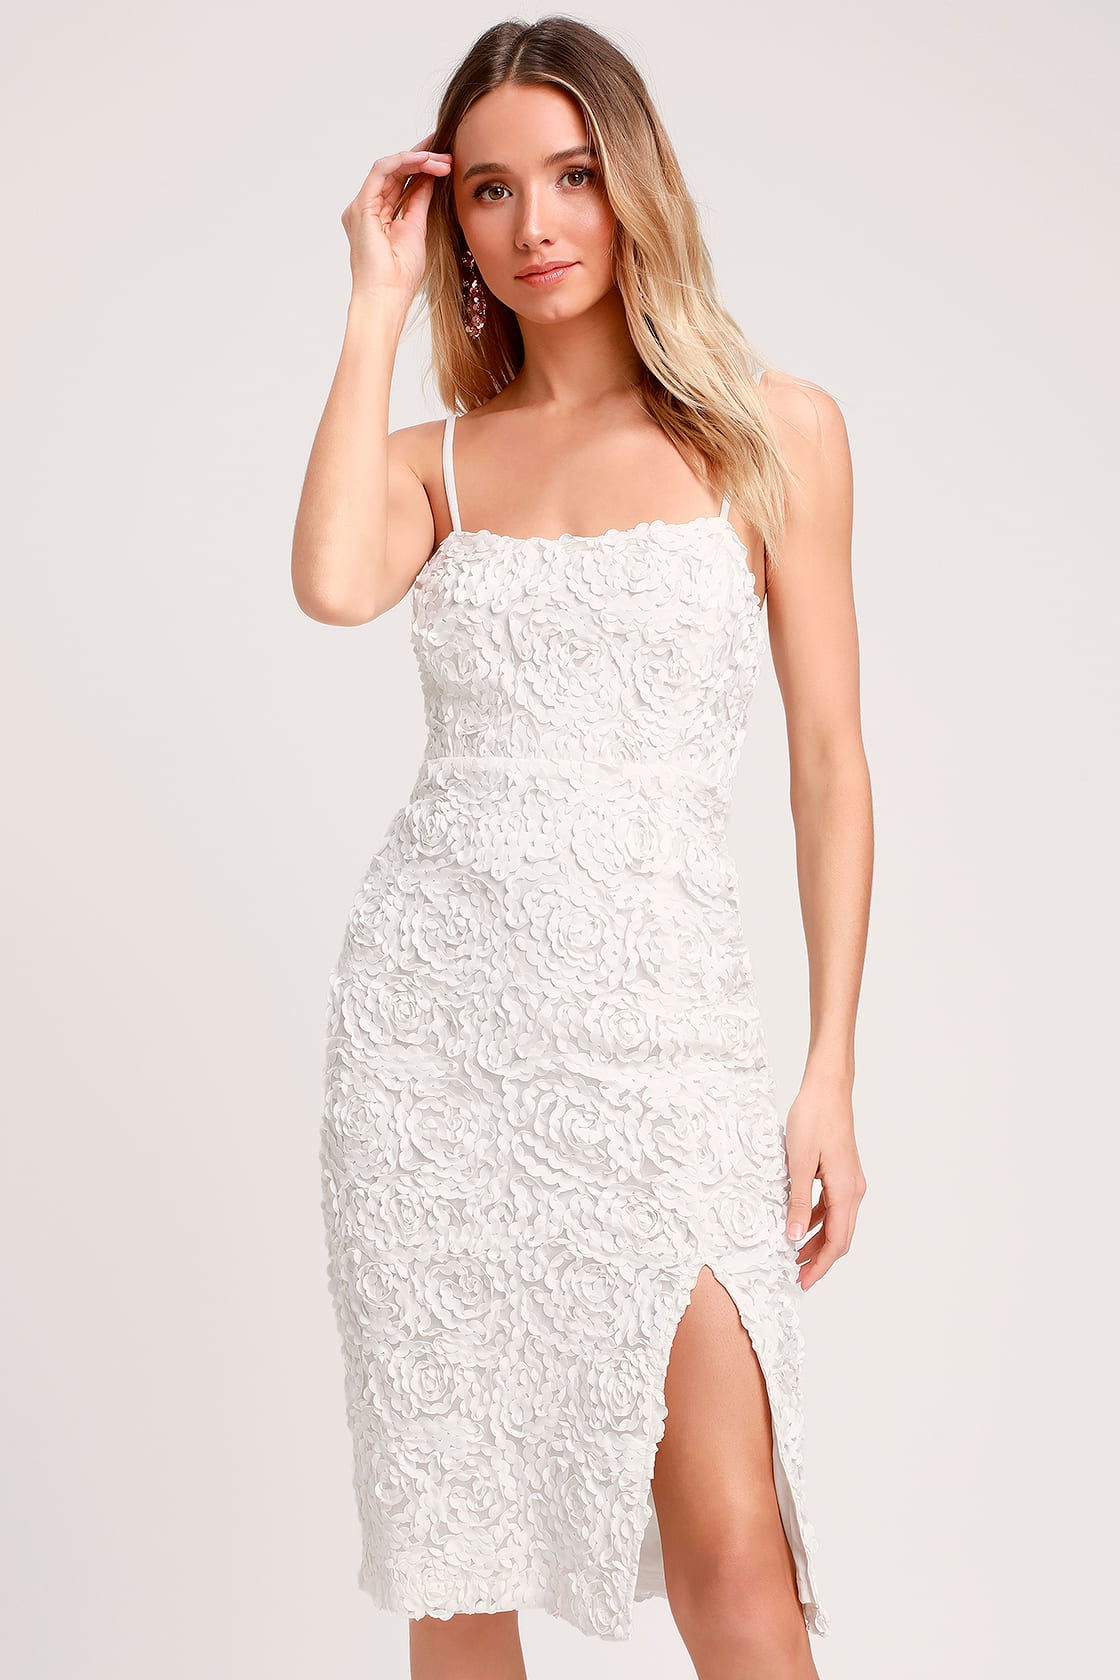 Blissful Moments White Textured Floral Midi Dress